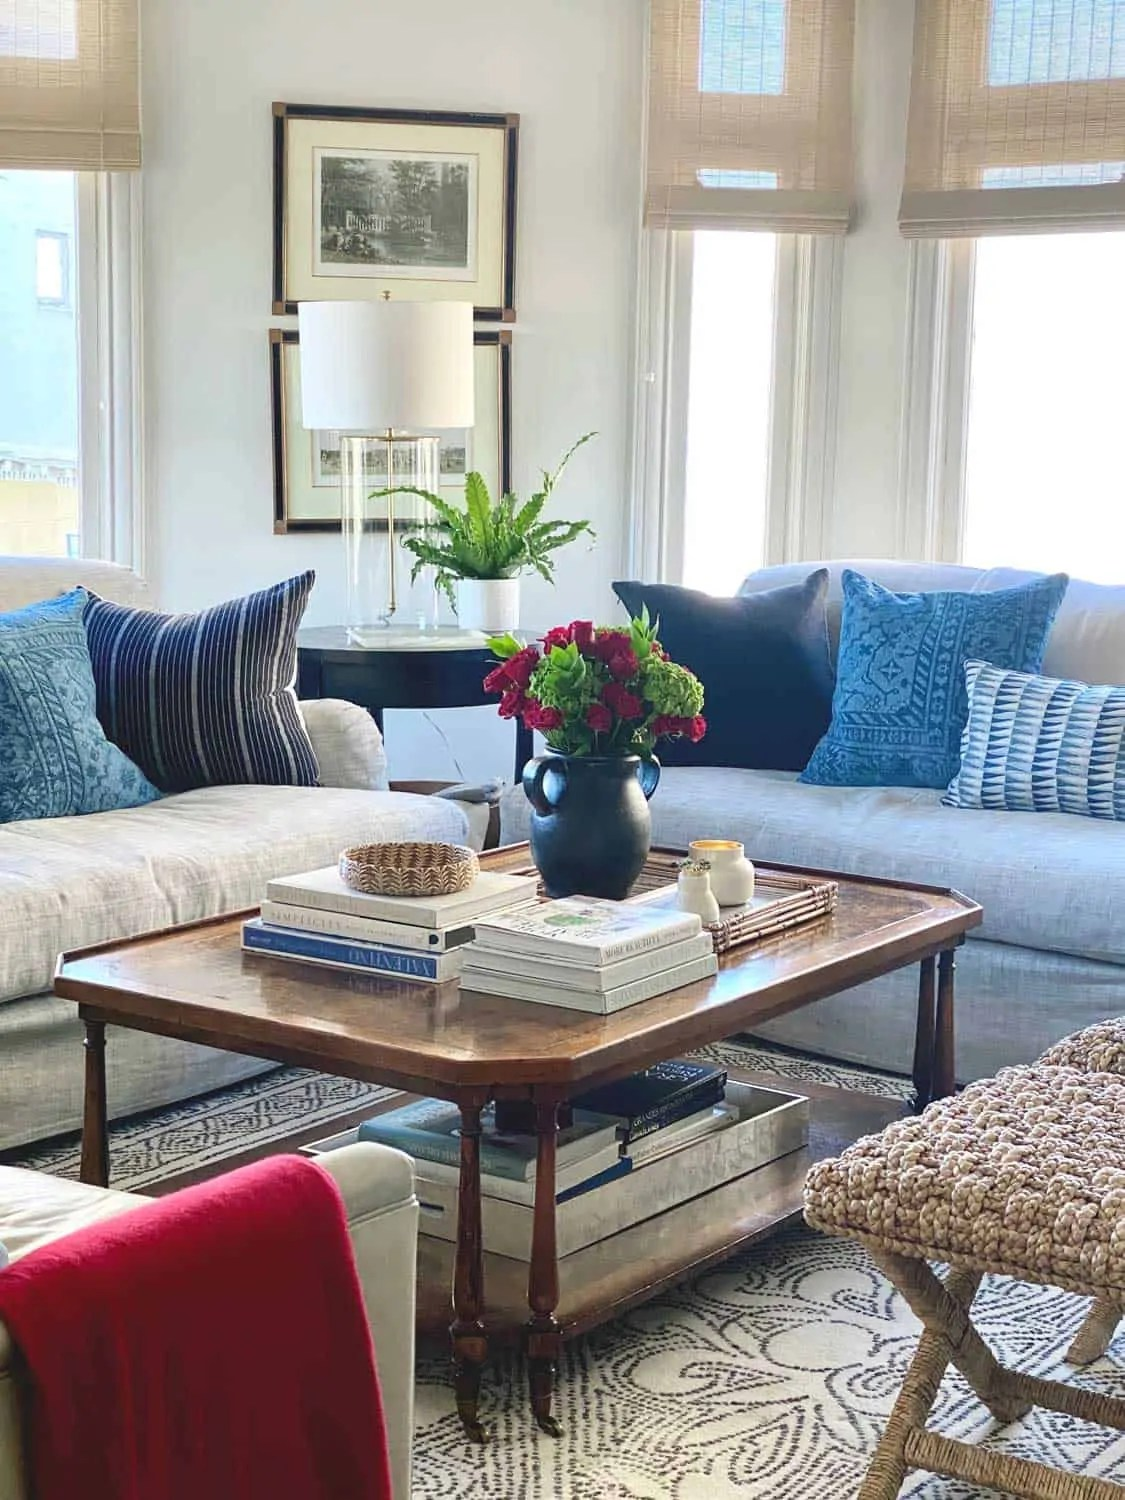 The San Francisco Living Room of decorator Mary Ann Pickett with touches of red